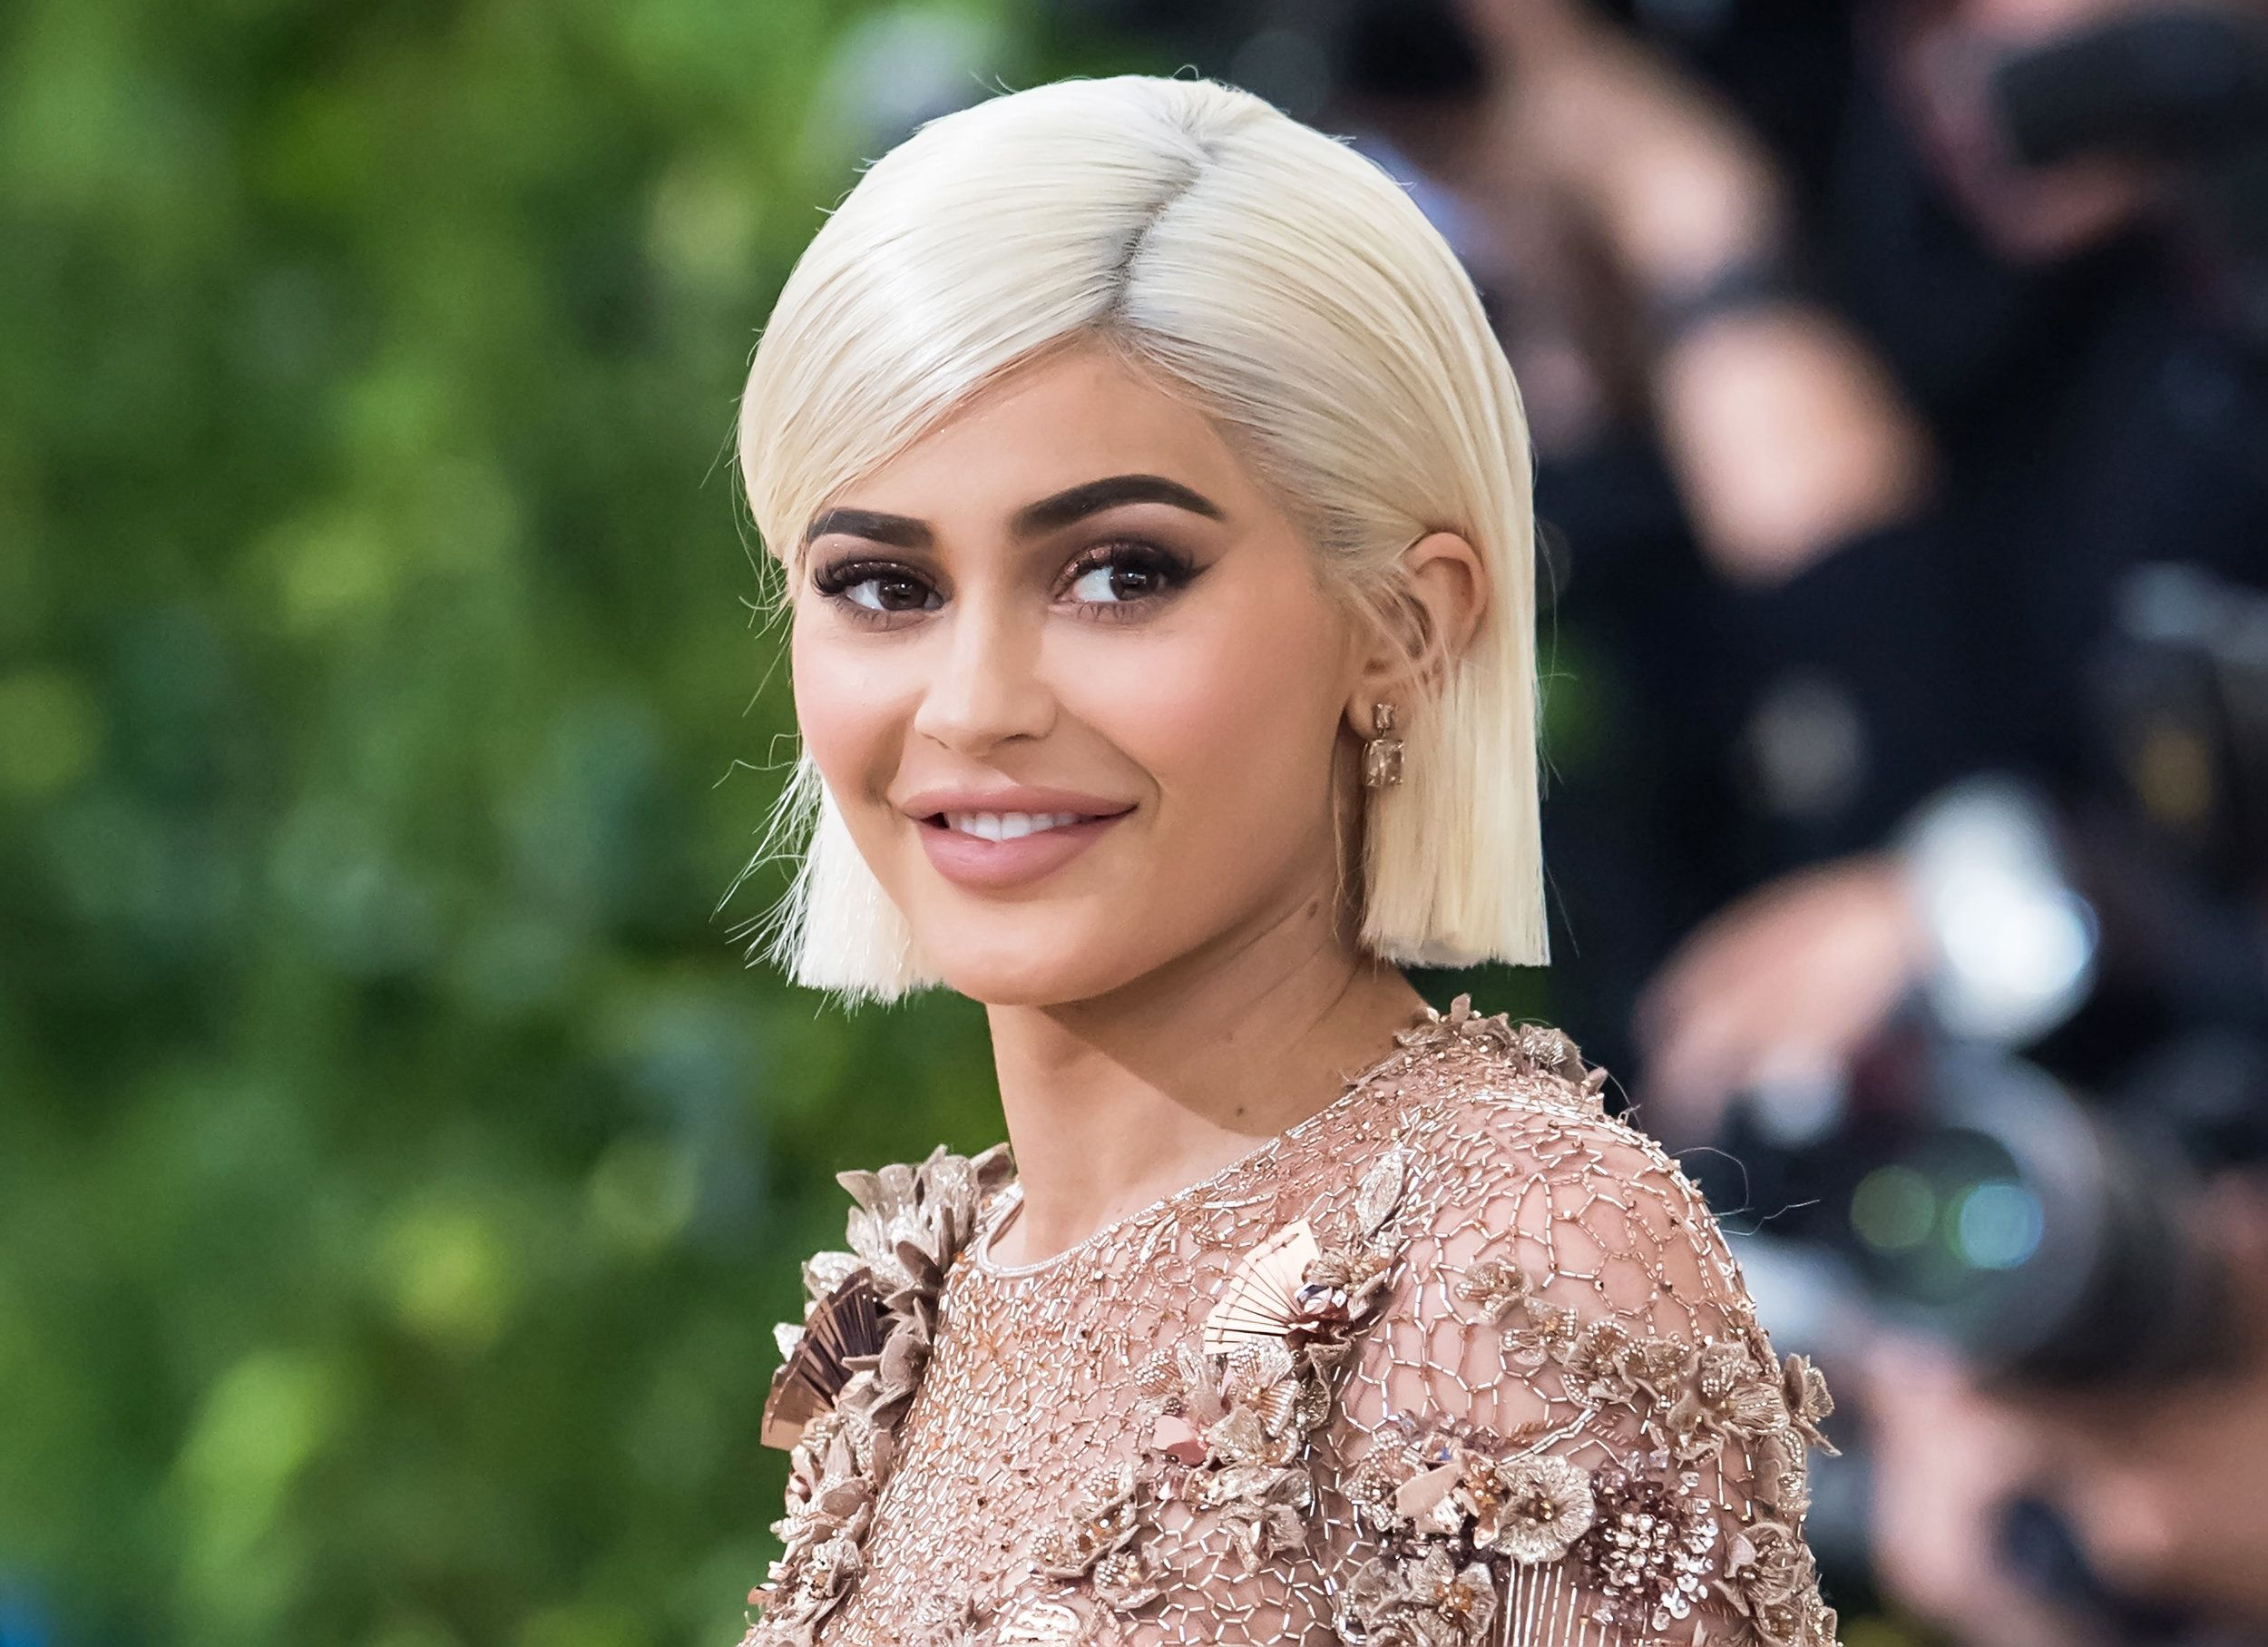 Kylie Jenner Is Reportedly